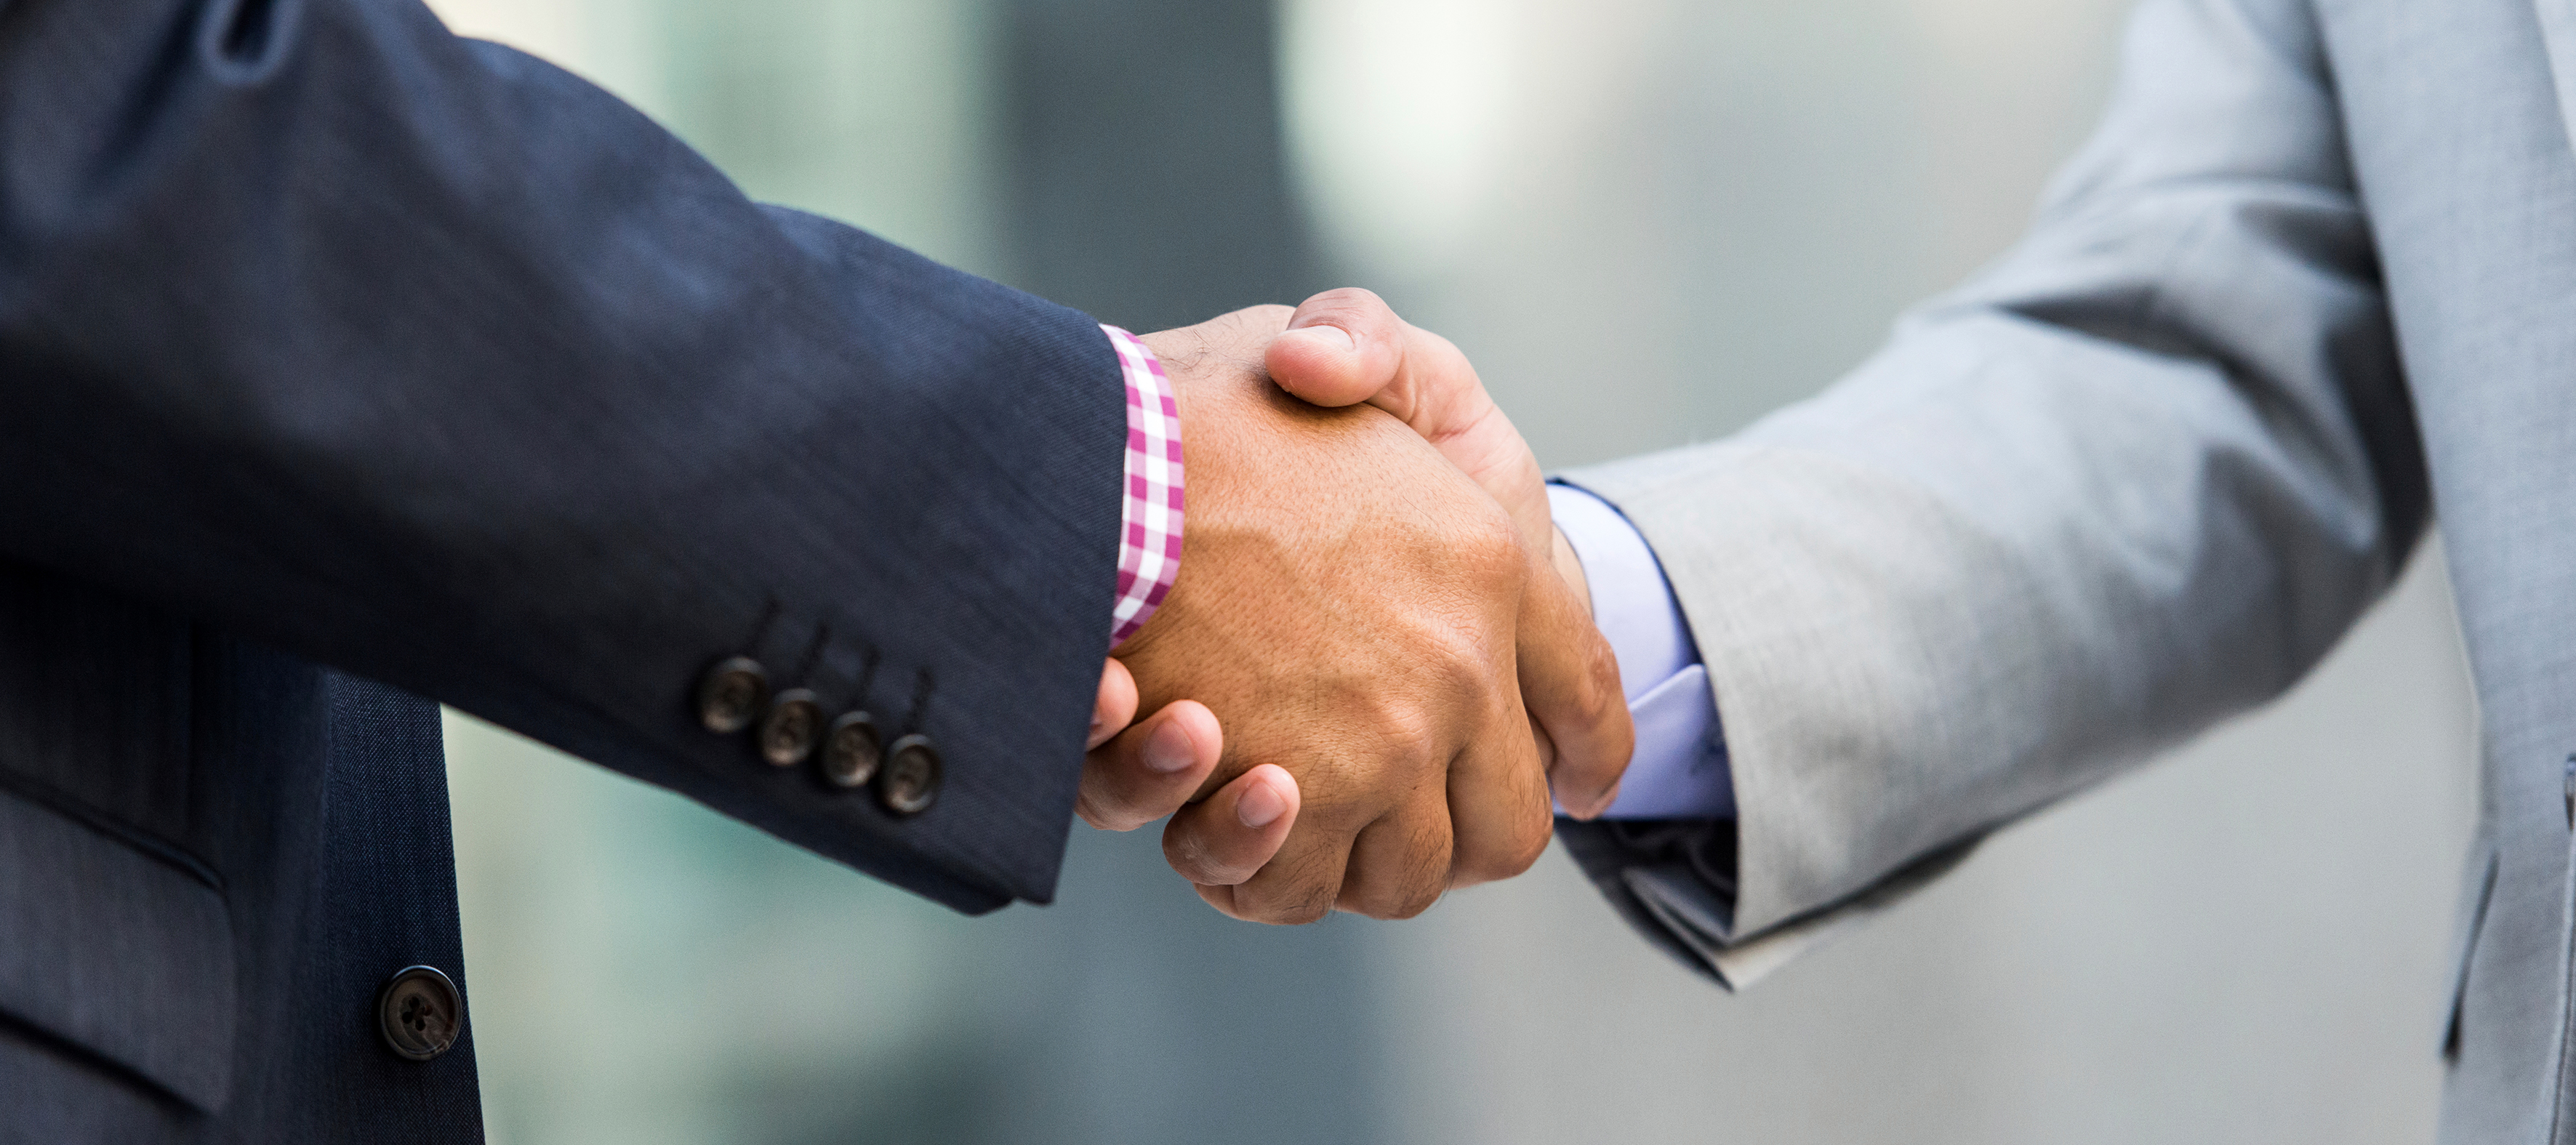 About us - Strong partnerships